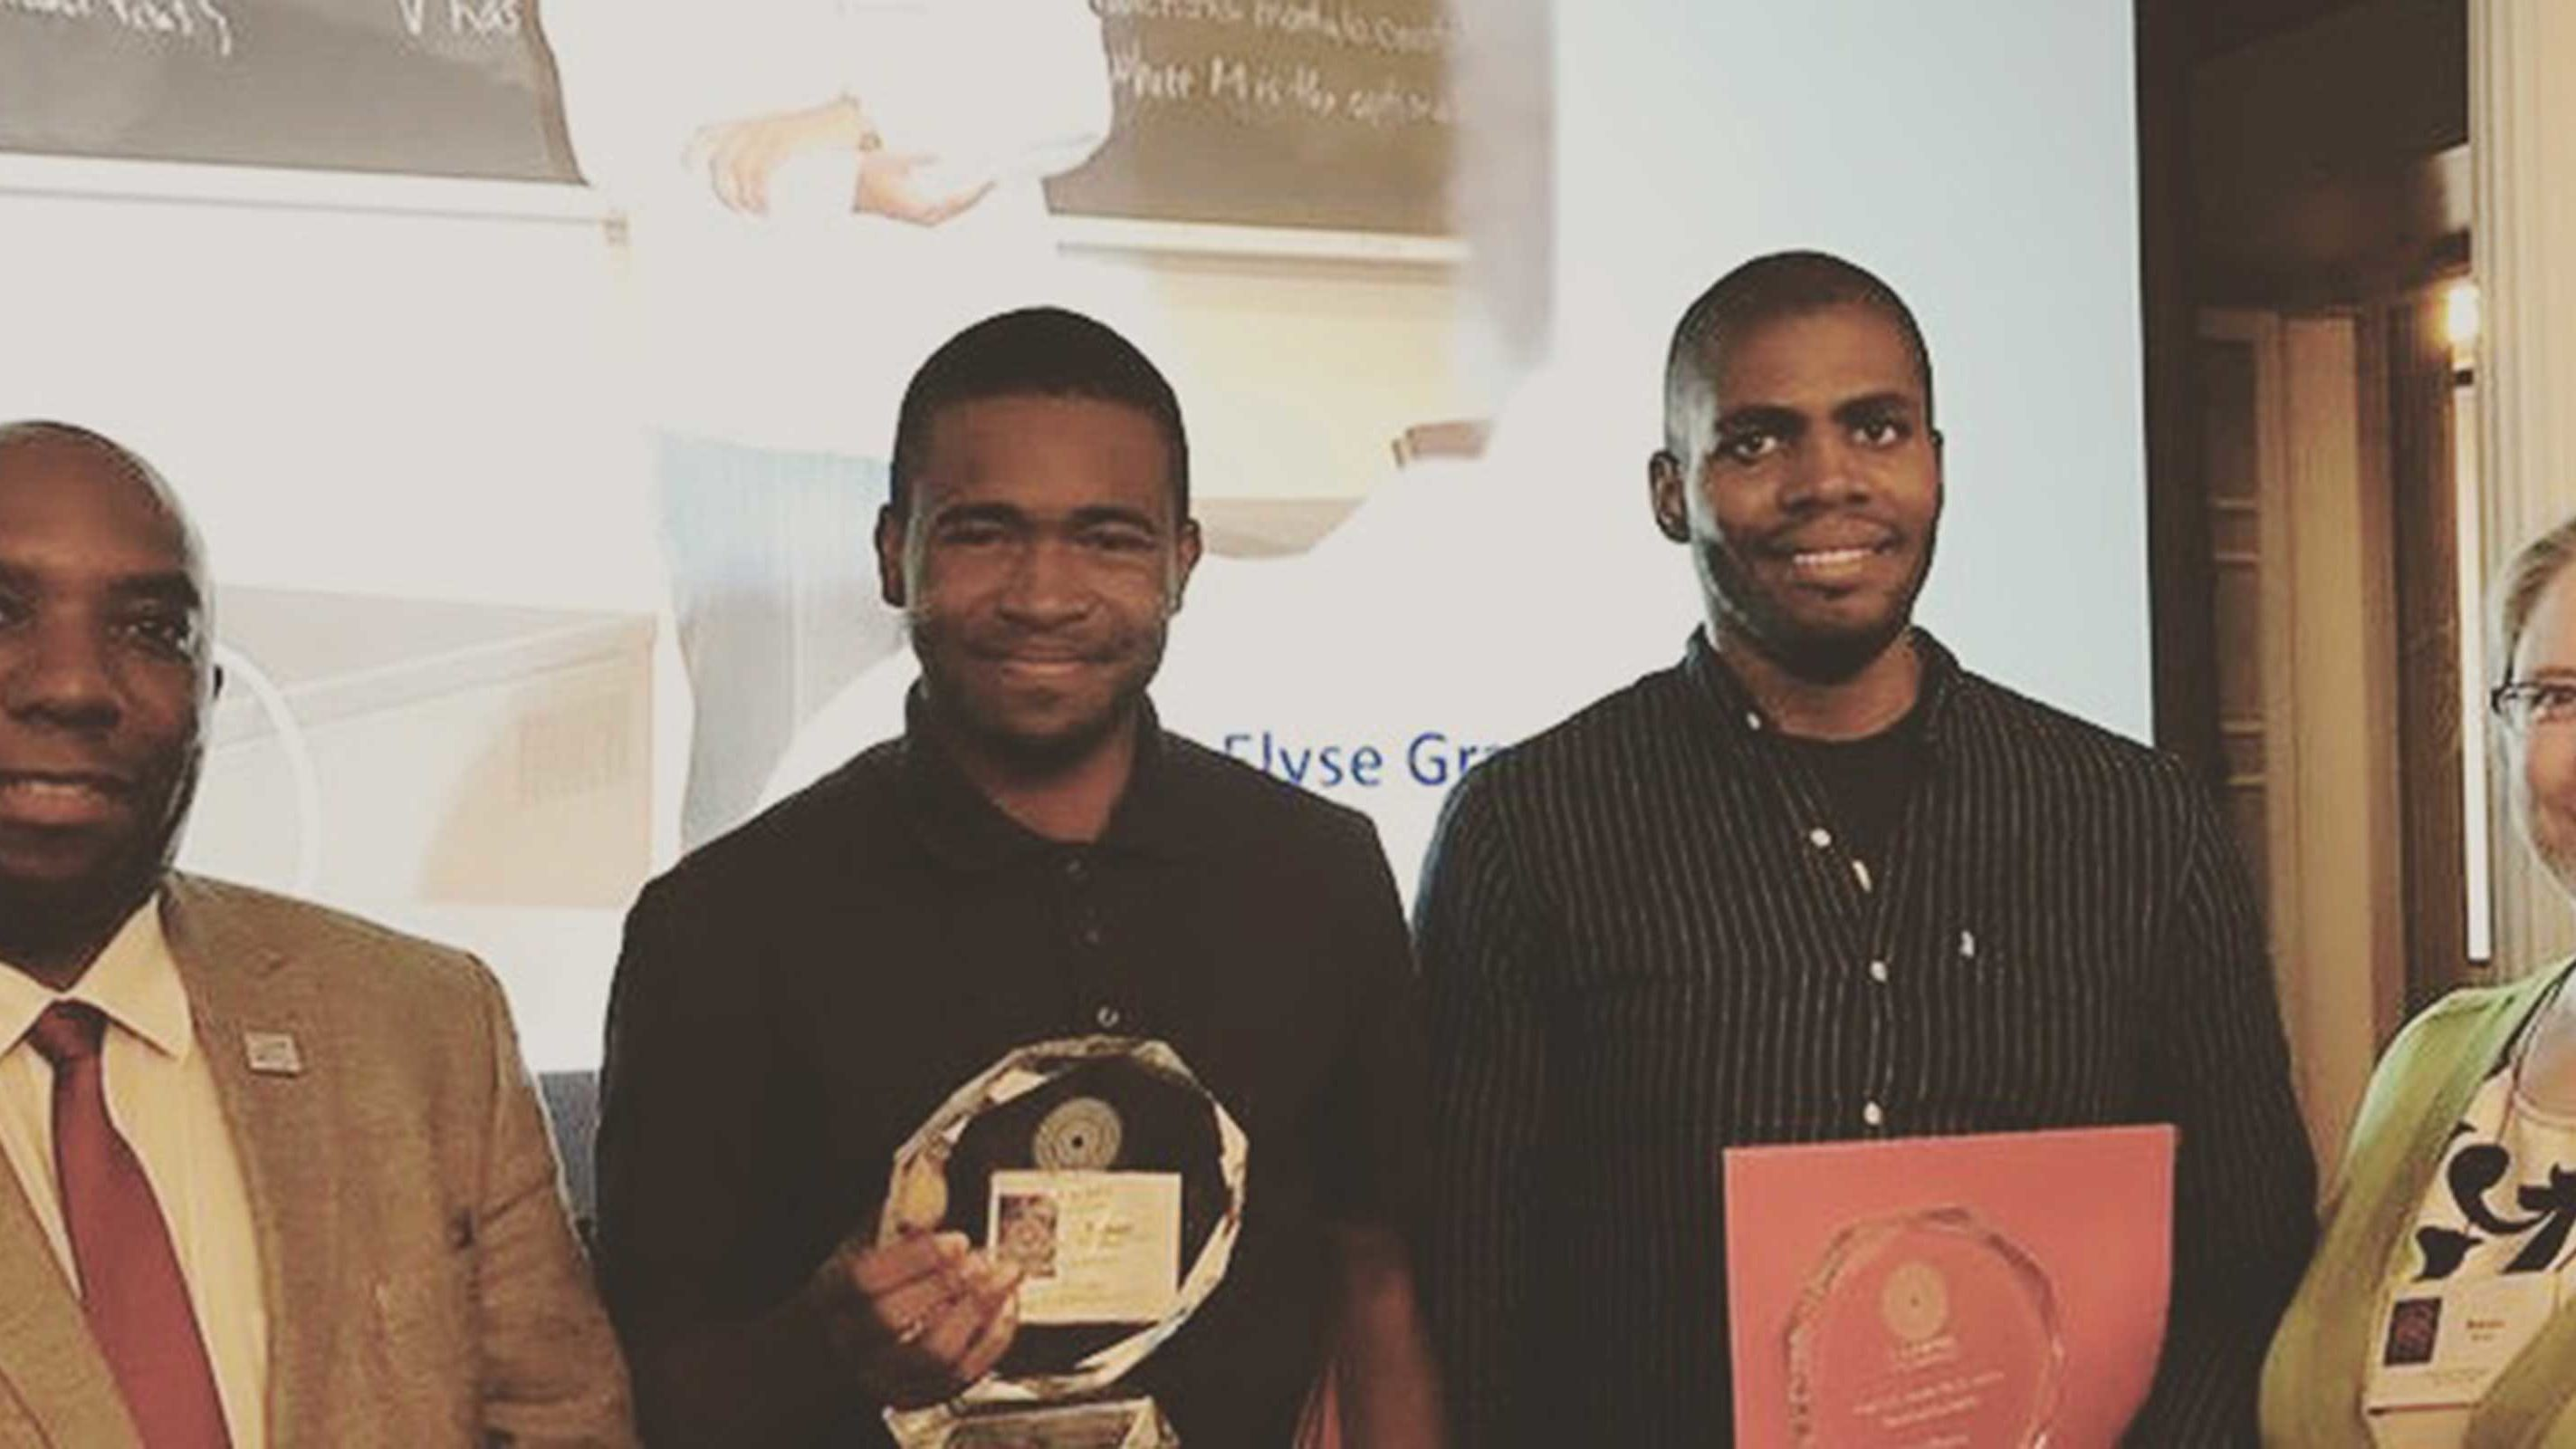 Two graduate students standing with their CAARMS23 awards, smiling next to their advisors.